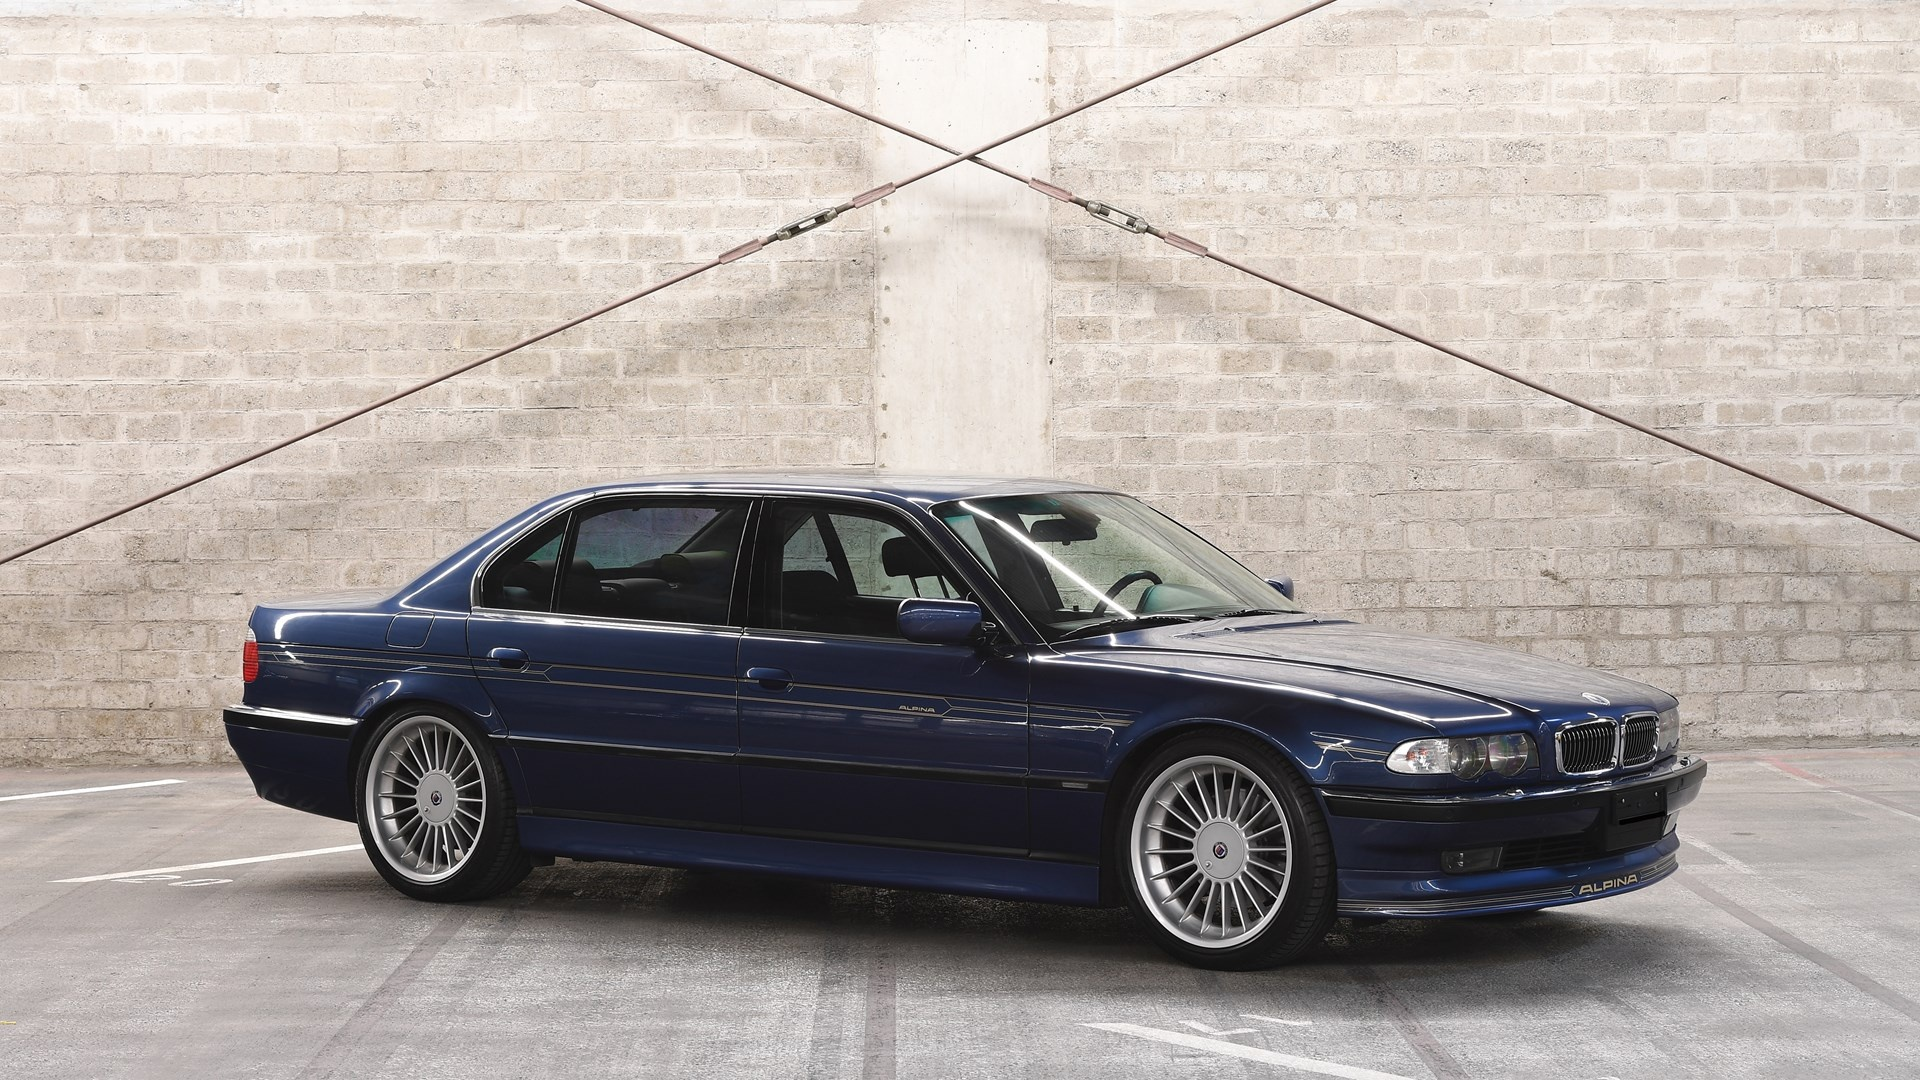 2000 Bmw Alpina B12 6 0 Langversion Classic Driver Market